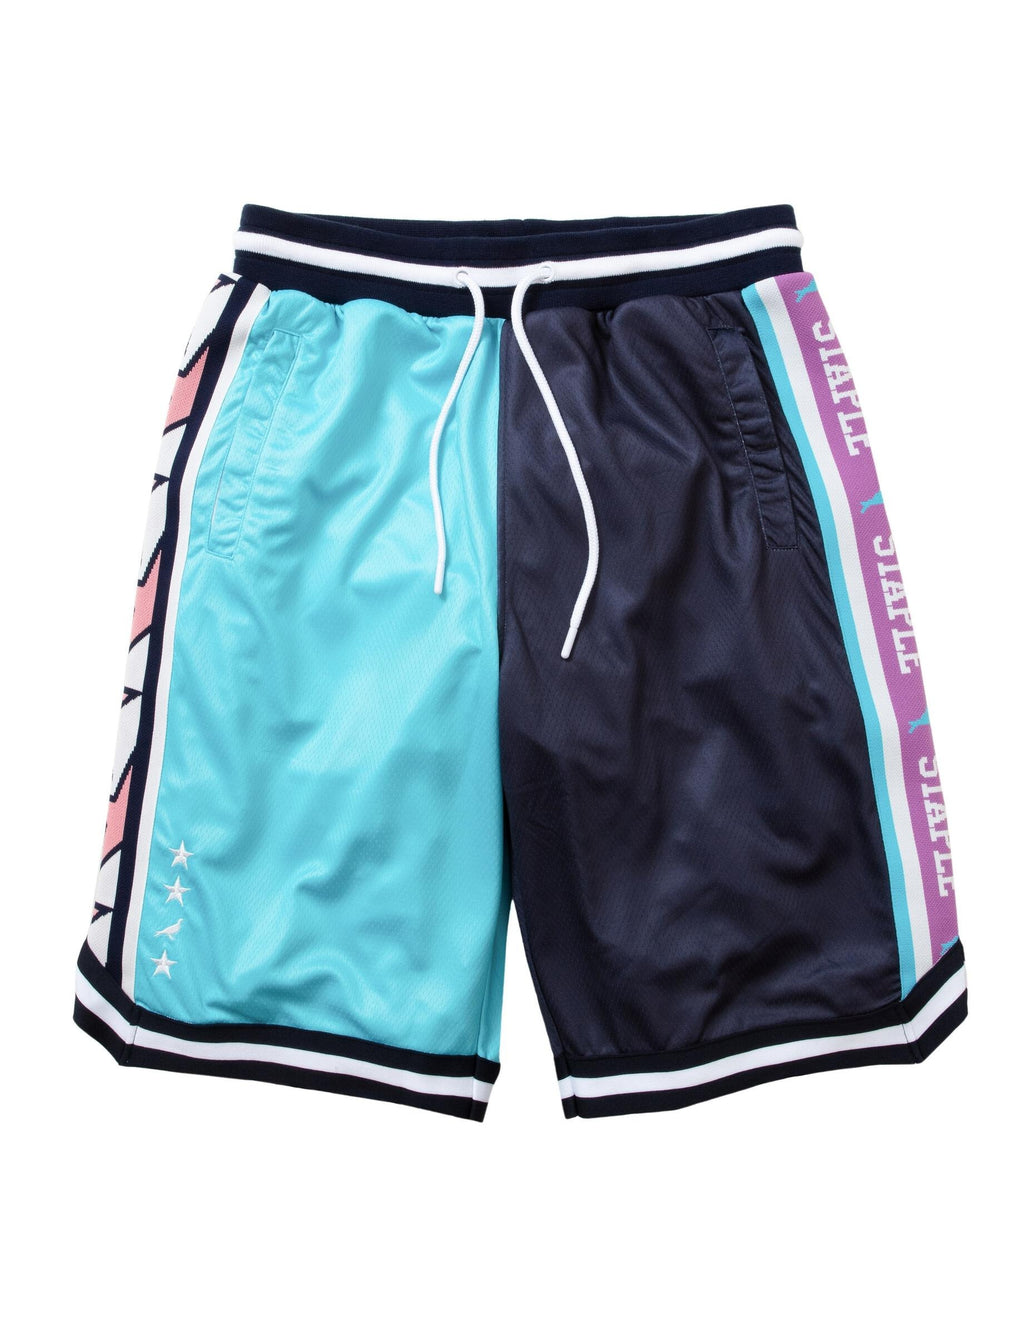 Collegiate Mesh Basketball Short - Shorts | Staple Pigeon